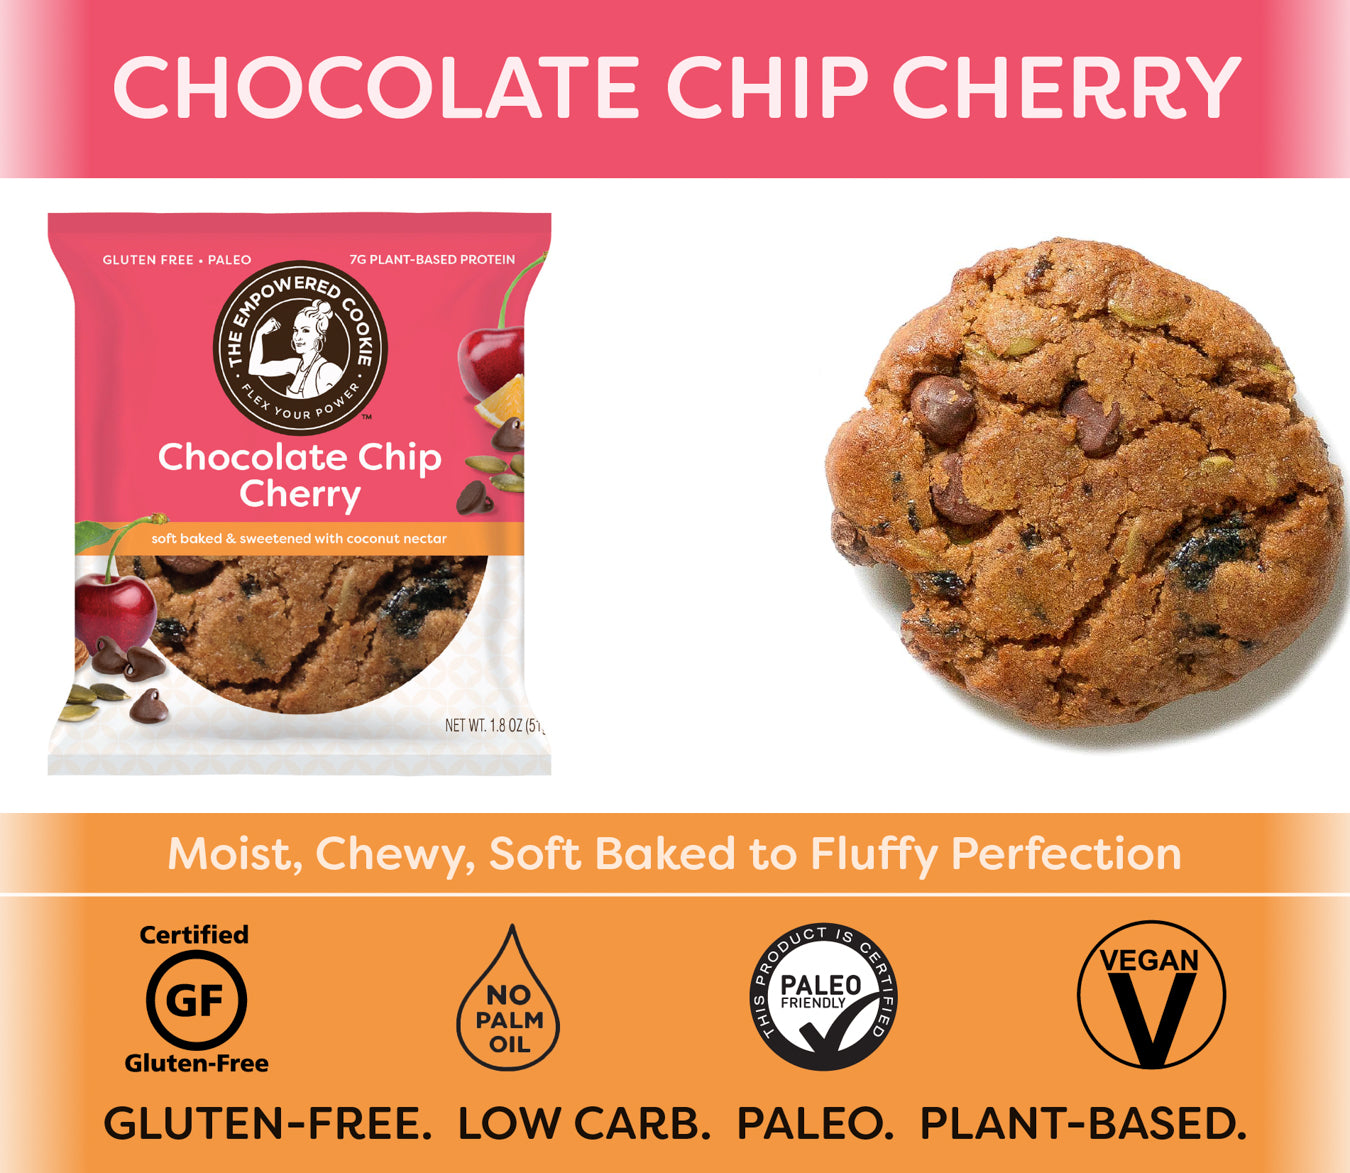 Chocolate Chip Cherry, The Empowered Cookie (12 Pack)